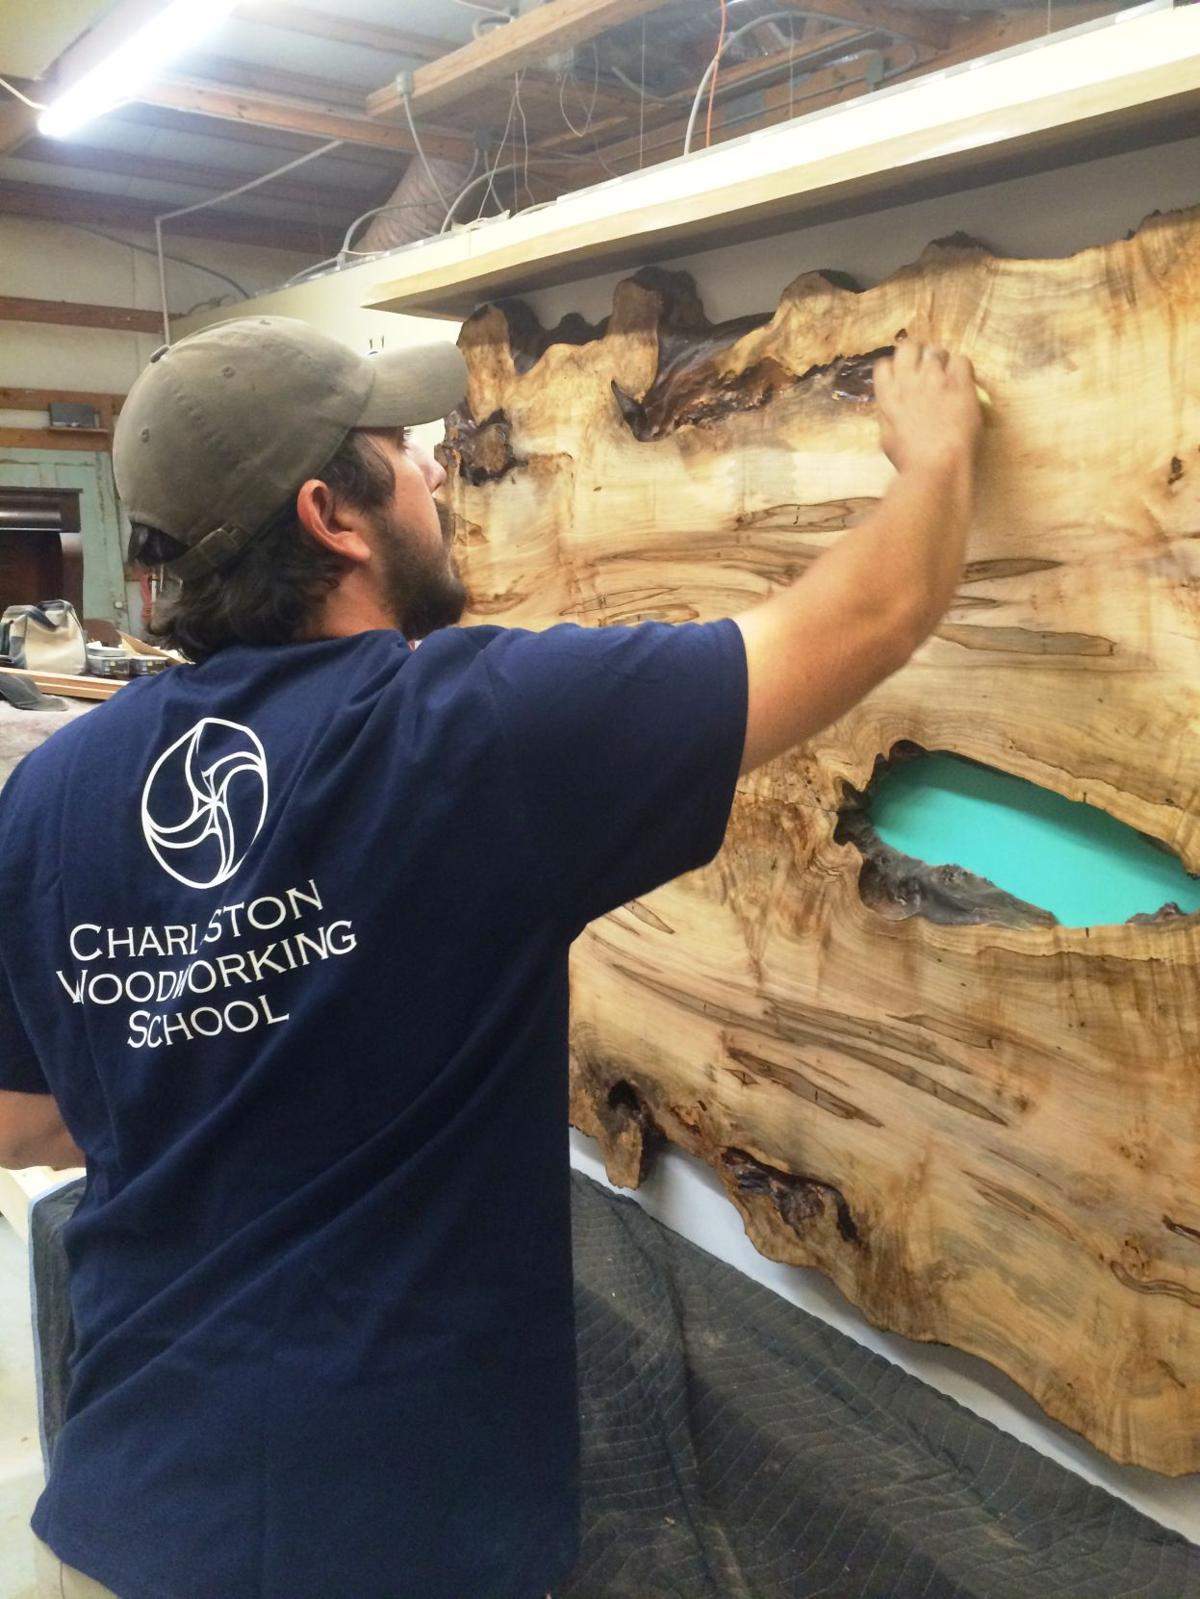 Woodworking S Comeback Charleston School Guild Hope To Bring